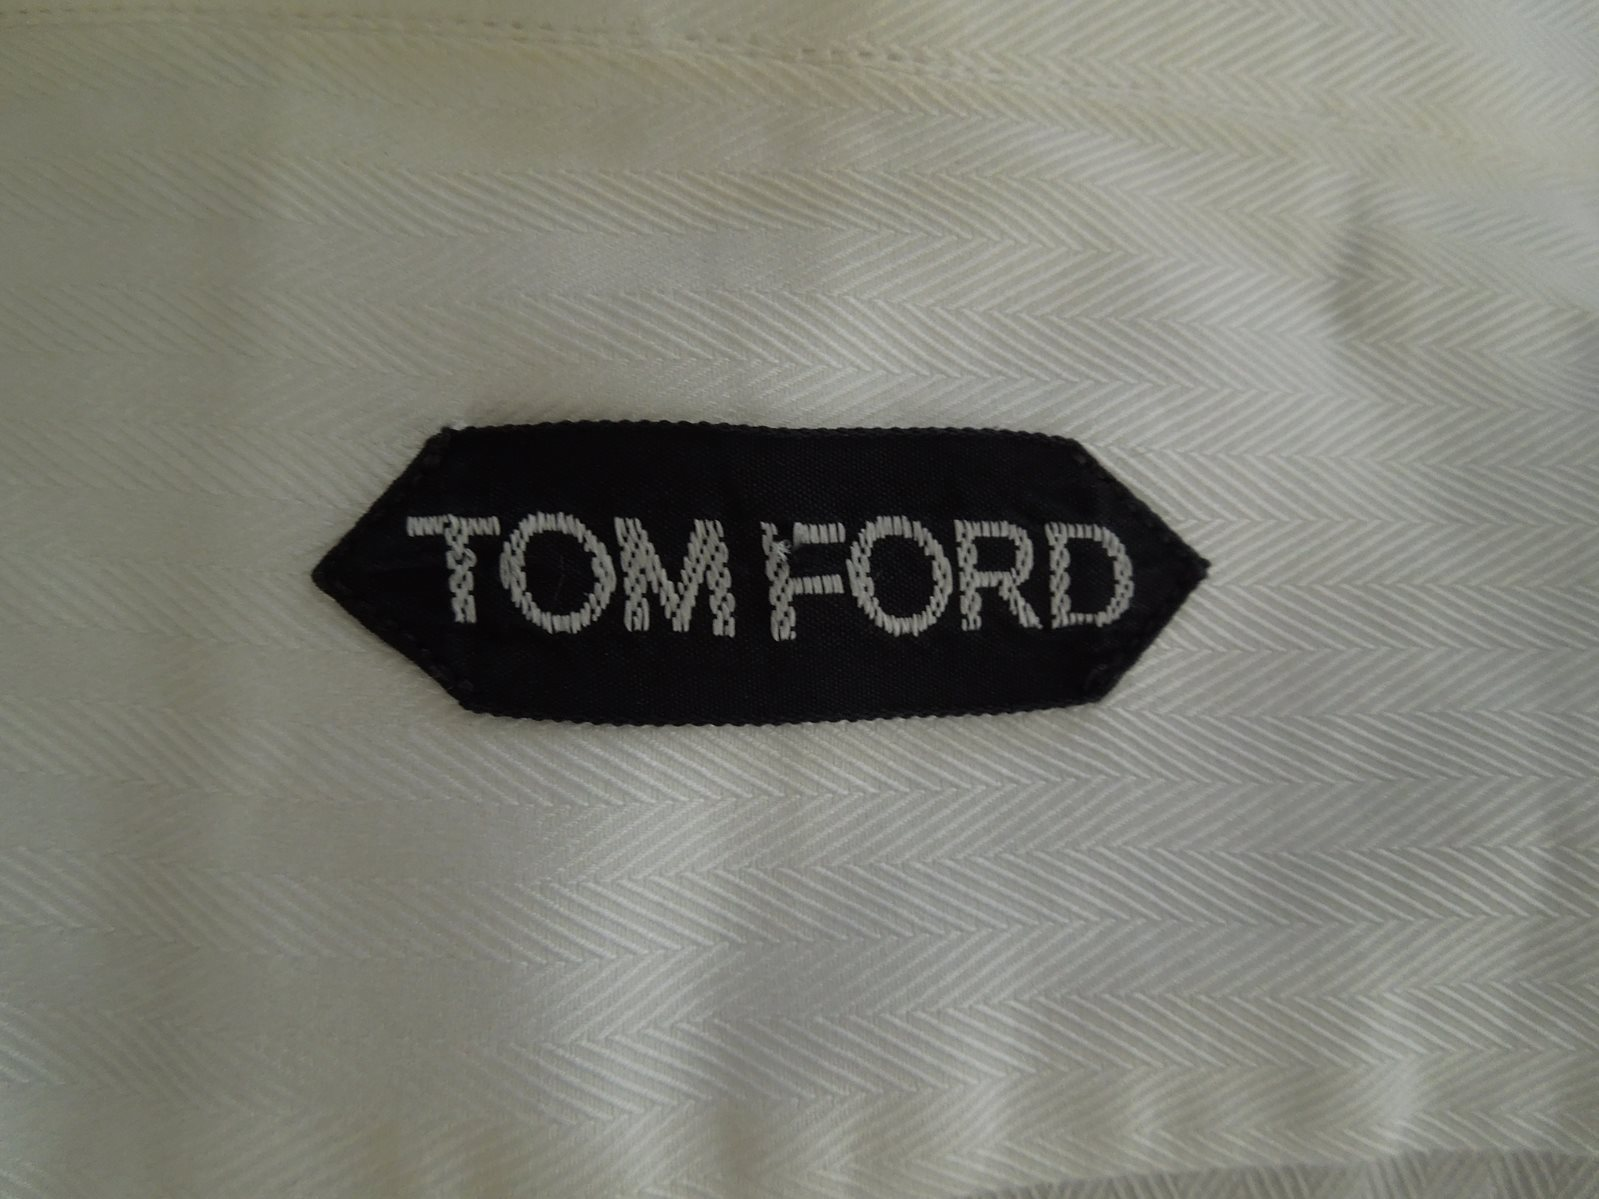 Tom Ford - The Loft, London